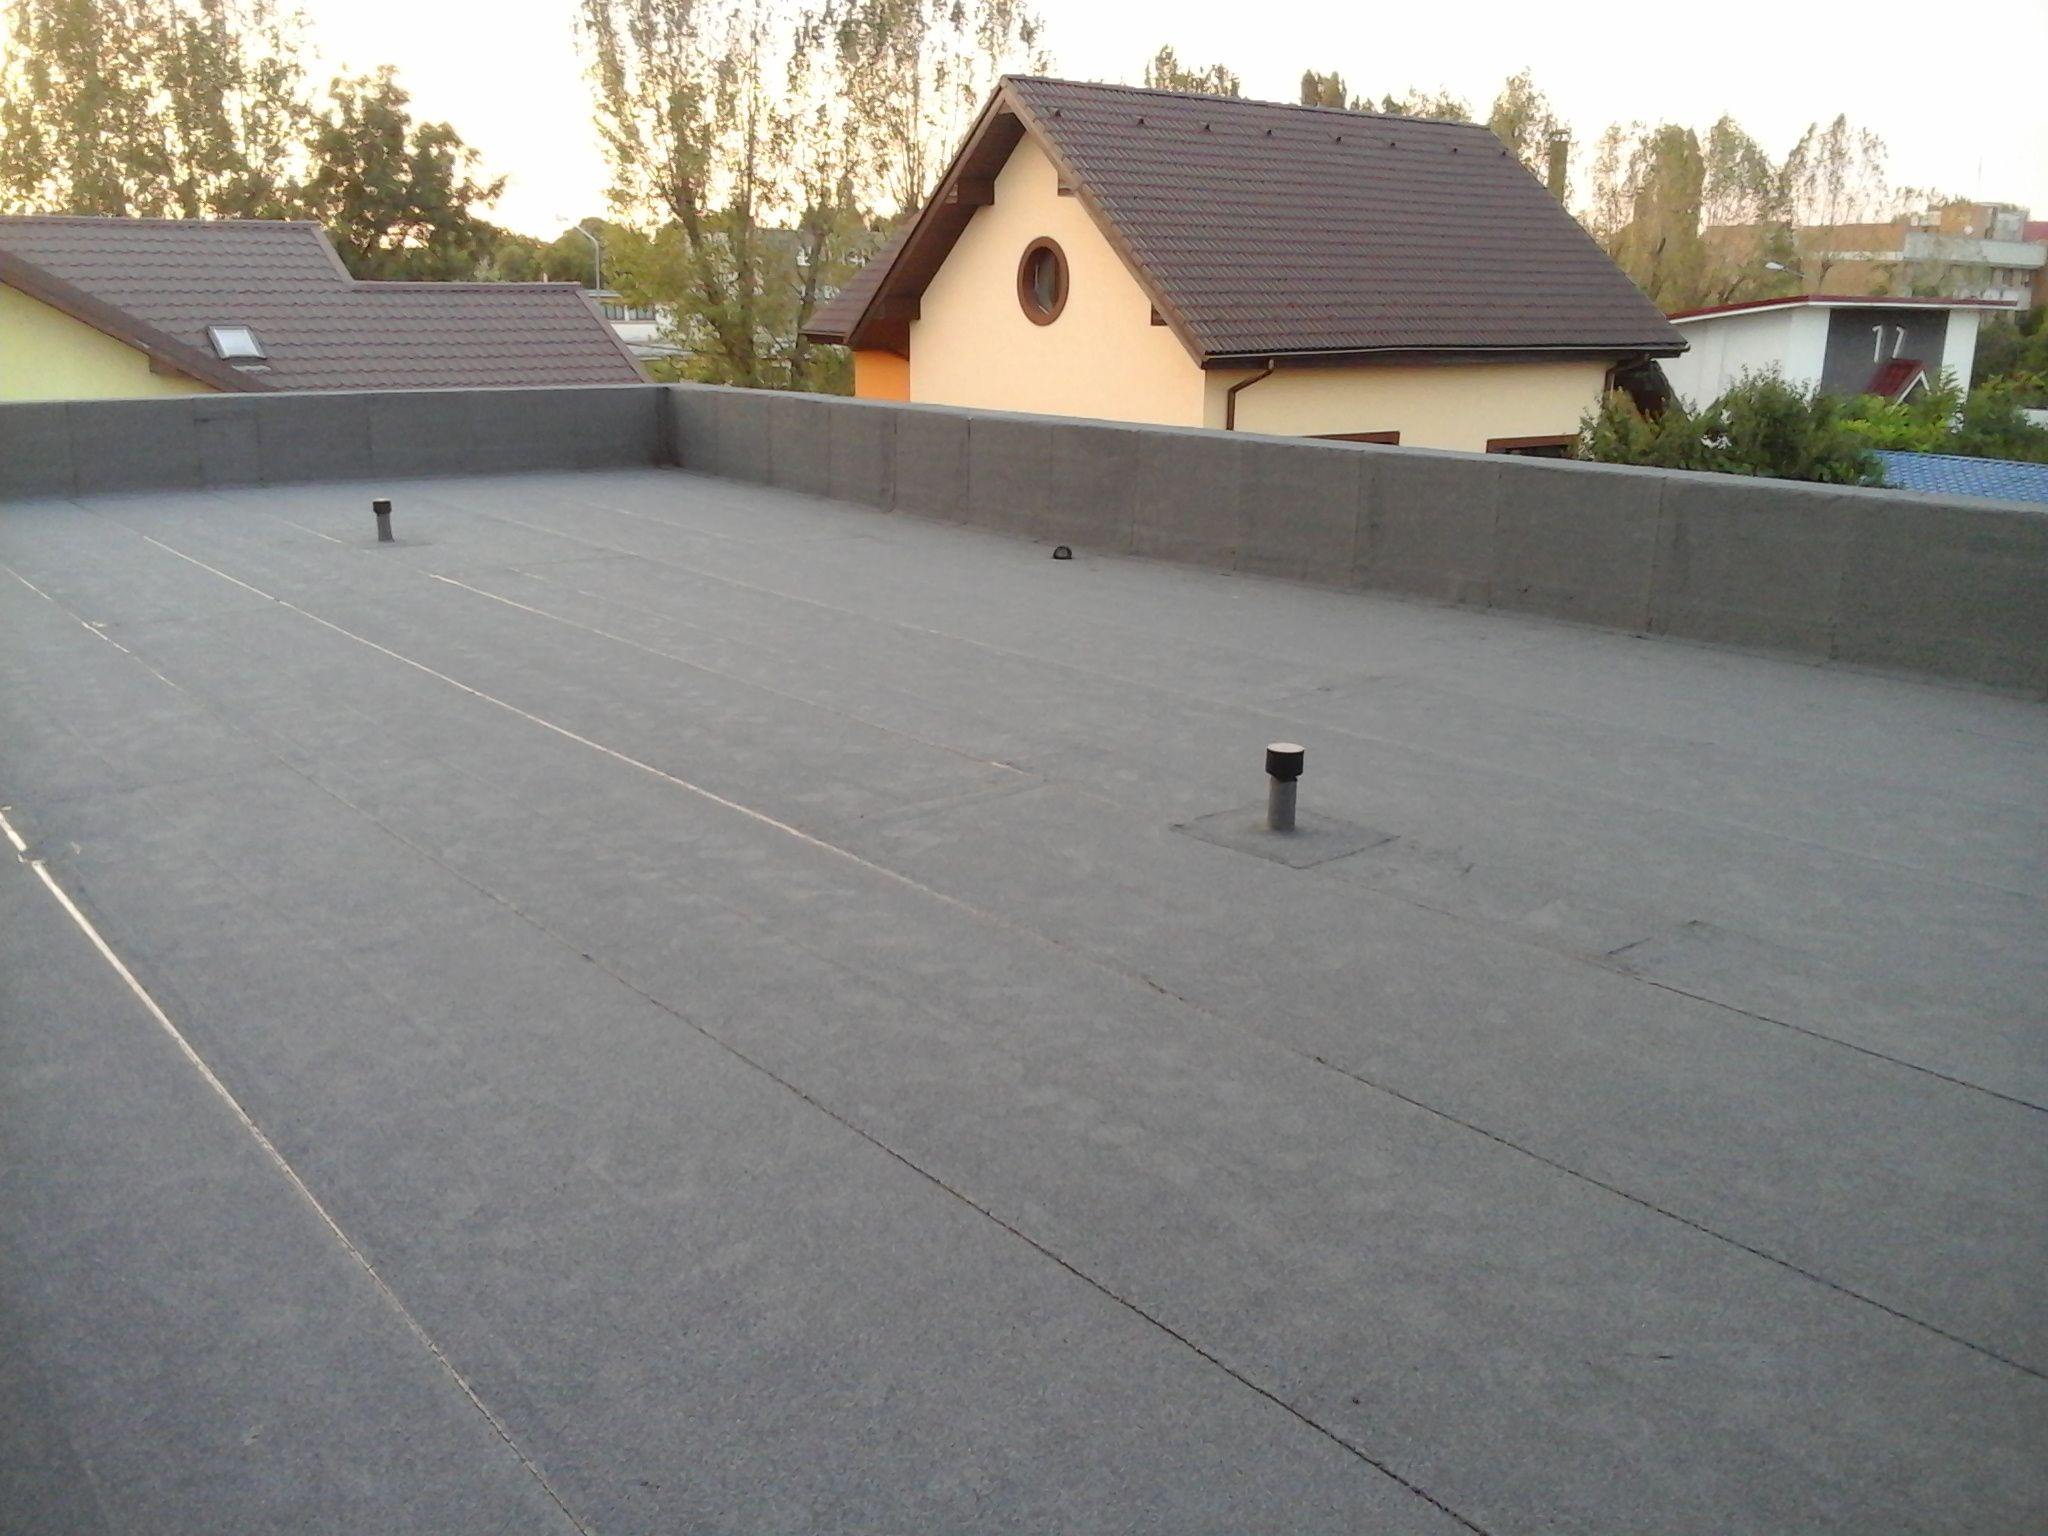 What Are The Advantages Of A Flat Roof Terrace Flat Roof Roof Terrace Roof